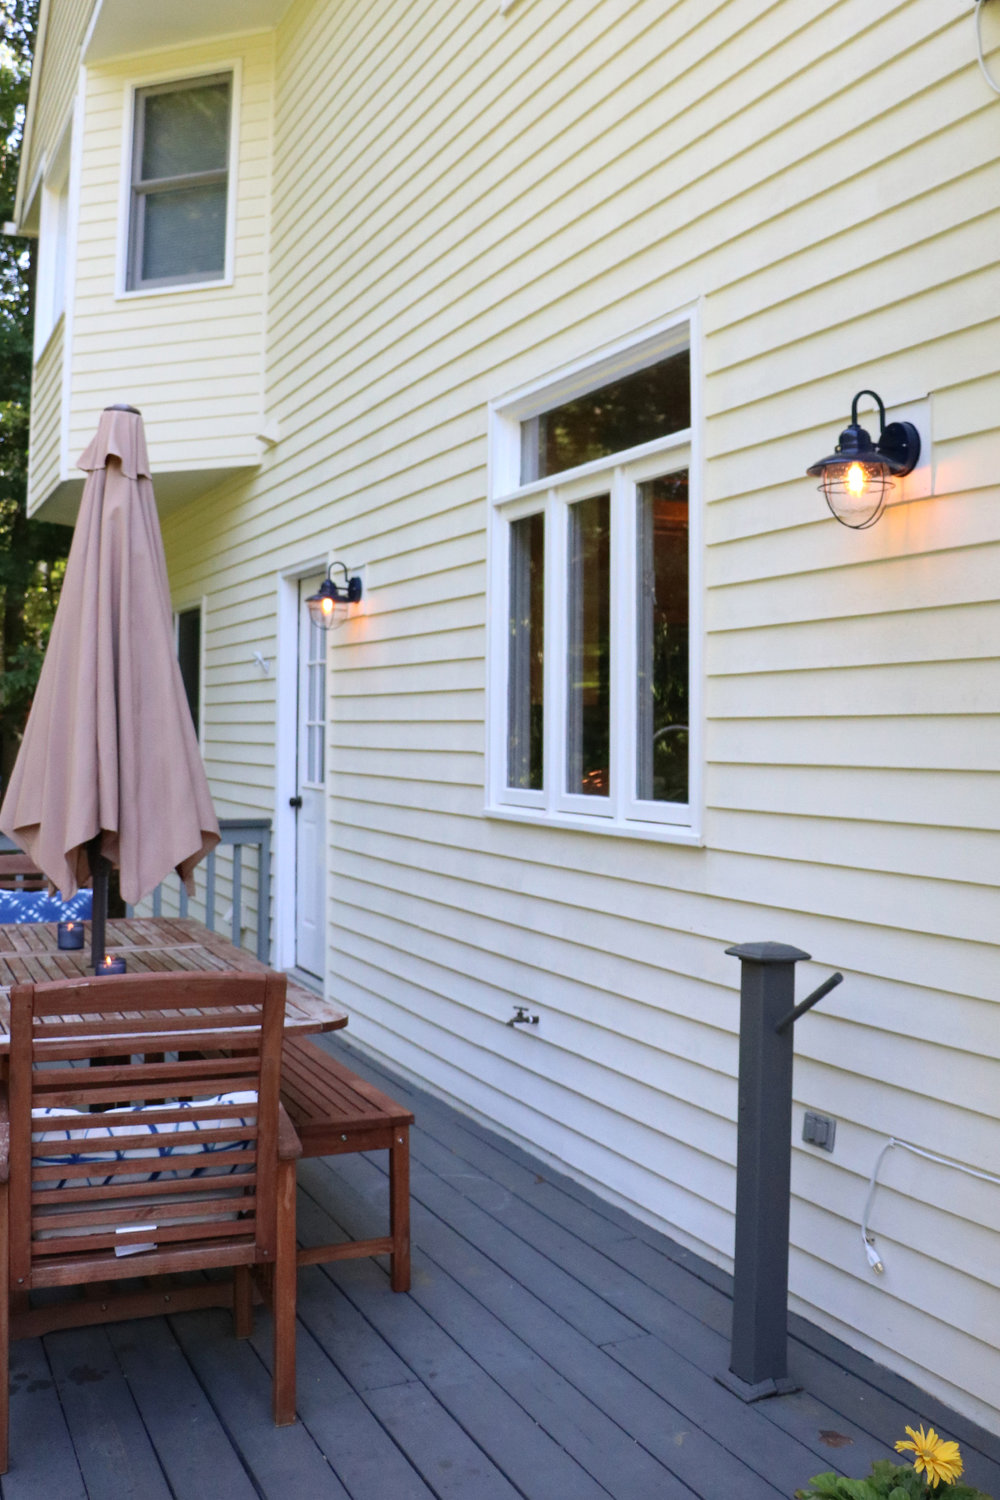 Our Outdoor Sconces + Creating What You Love Verses Settling | root + dwell